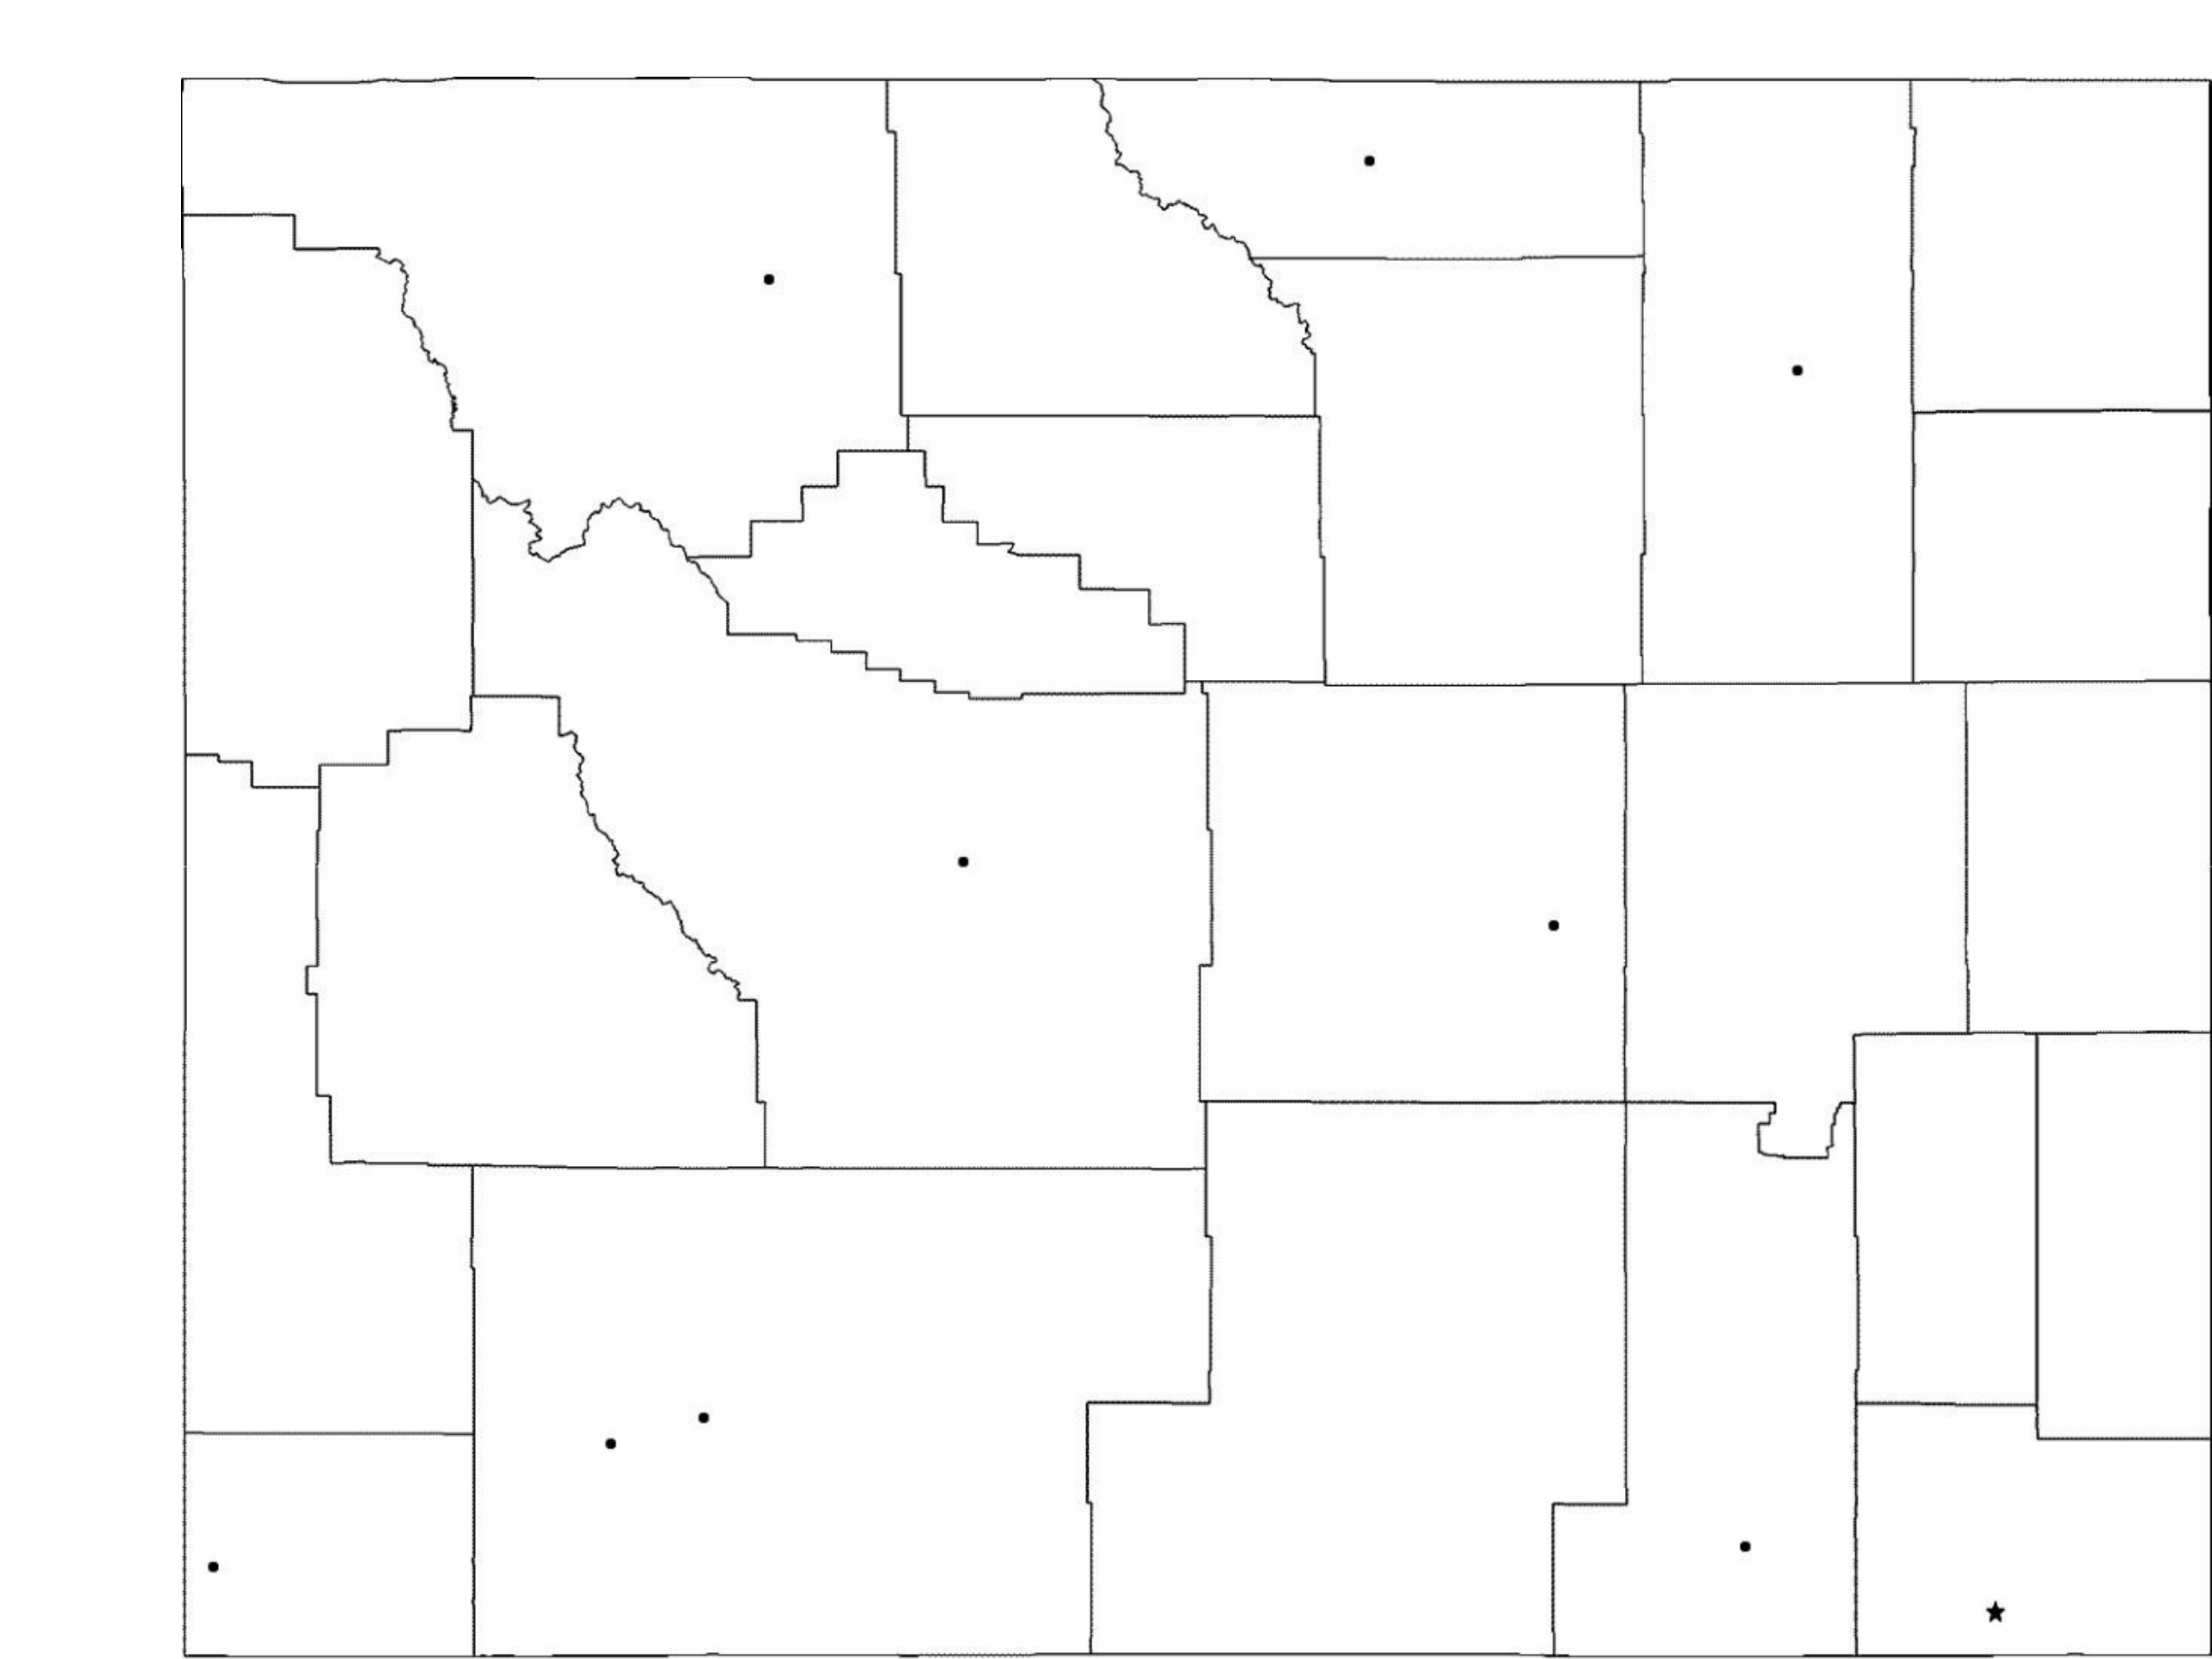 blank wyoming city map free download